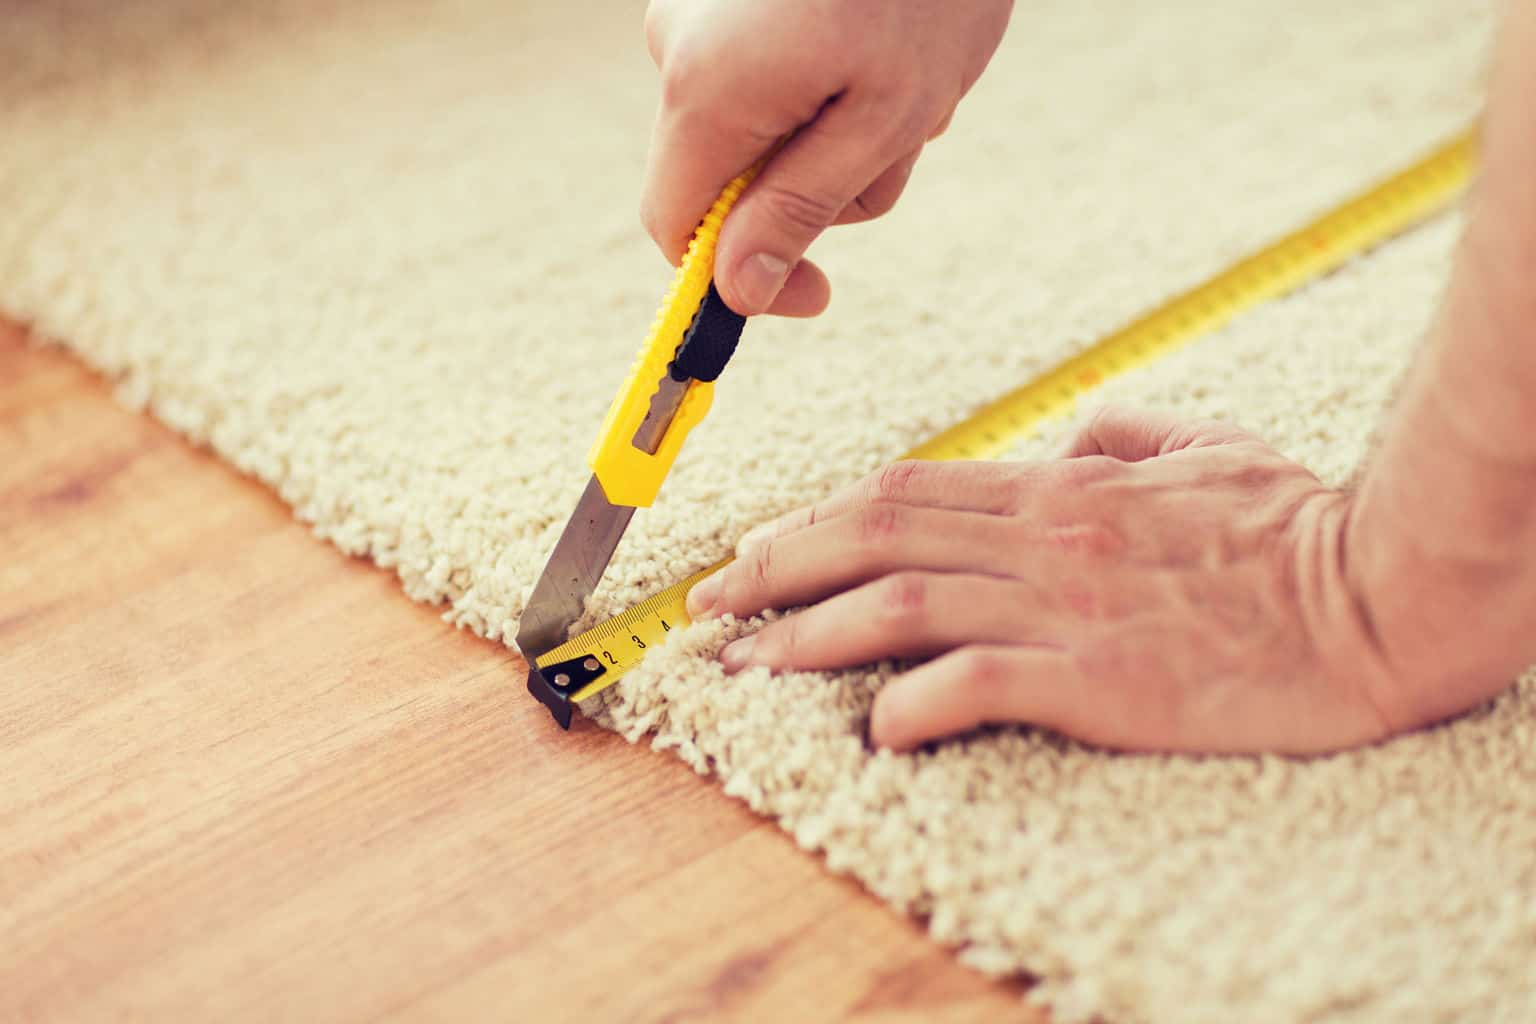 How To Install Carpet Padding [A Complete Guide] How To Lay Carpet In A Bat on